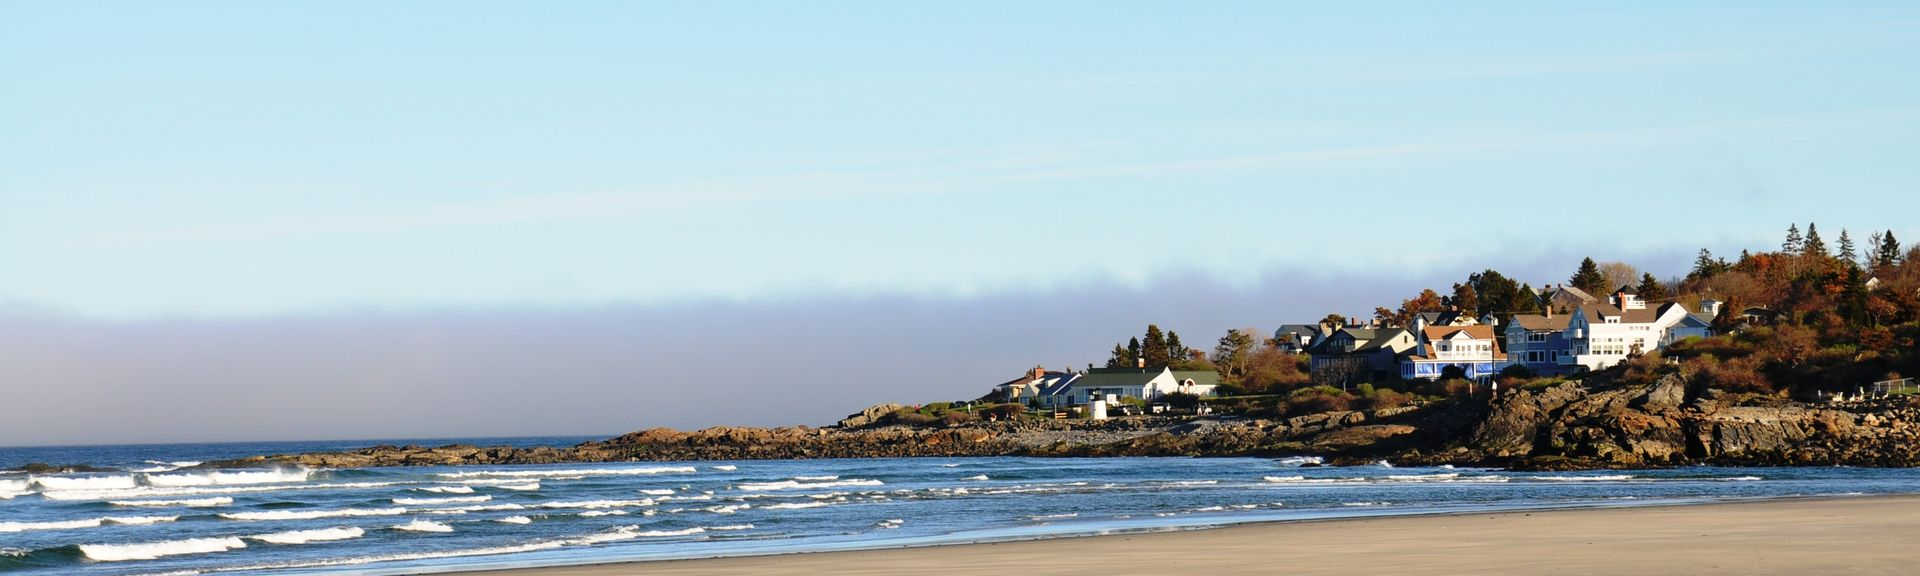 Strand von Long Sands, York, Maine, USA